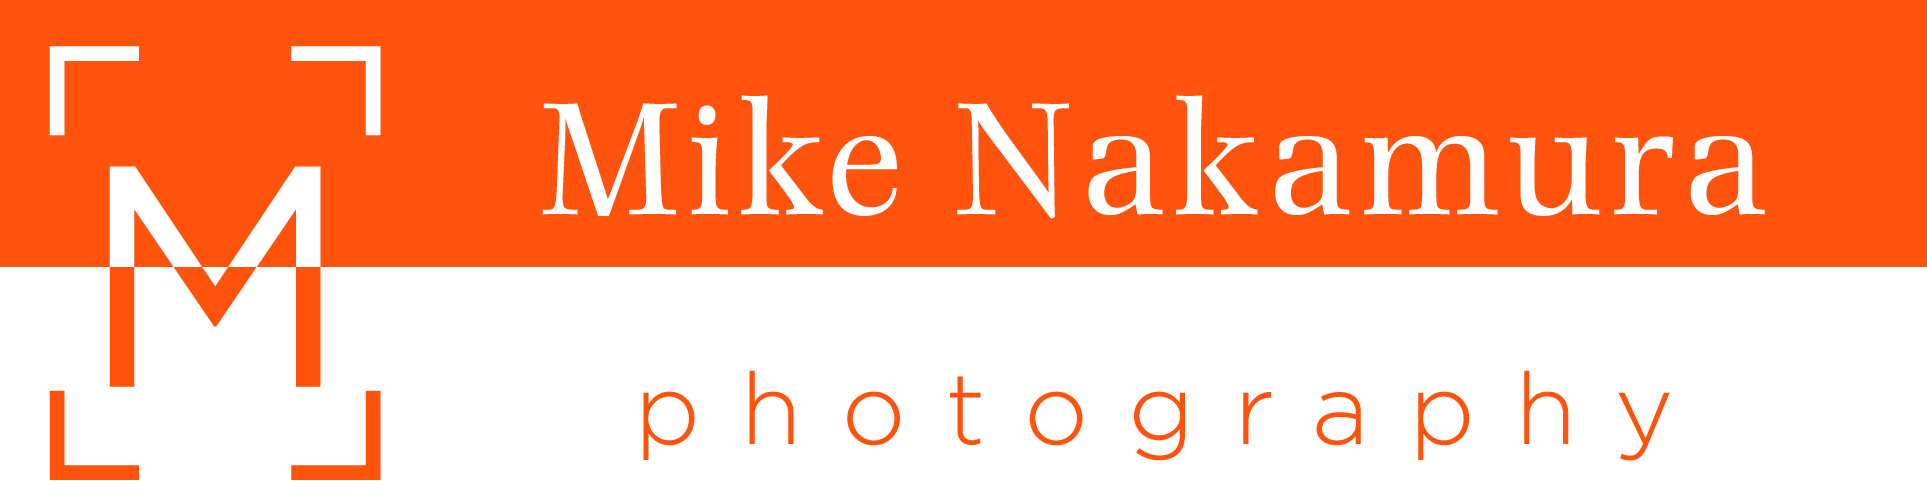 Images by  Mike Nakamura Photography